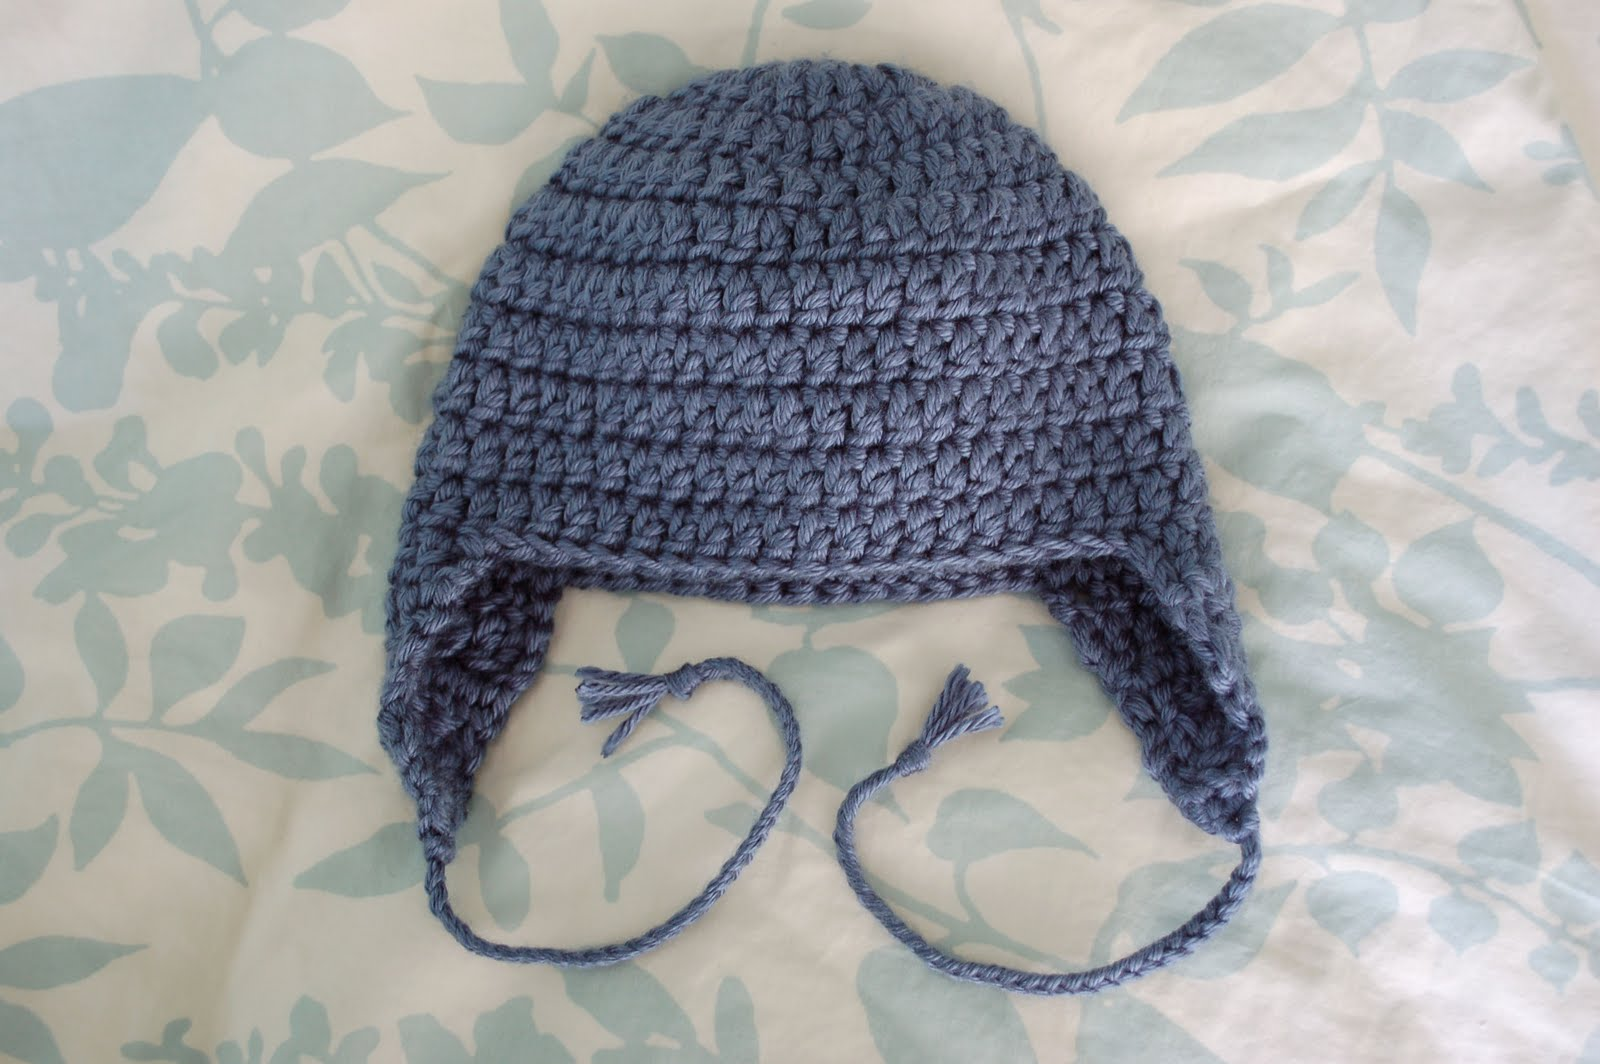 Free Crochet Pattern Toddler Hat Ear Flaps : Alli Crafts: Free Pattern: Kids Earflap Hat